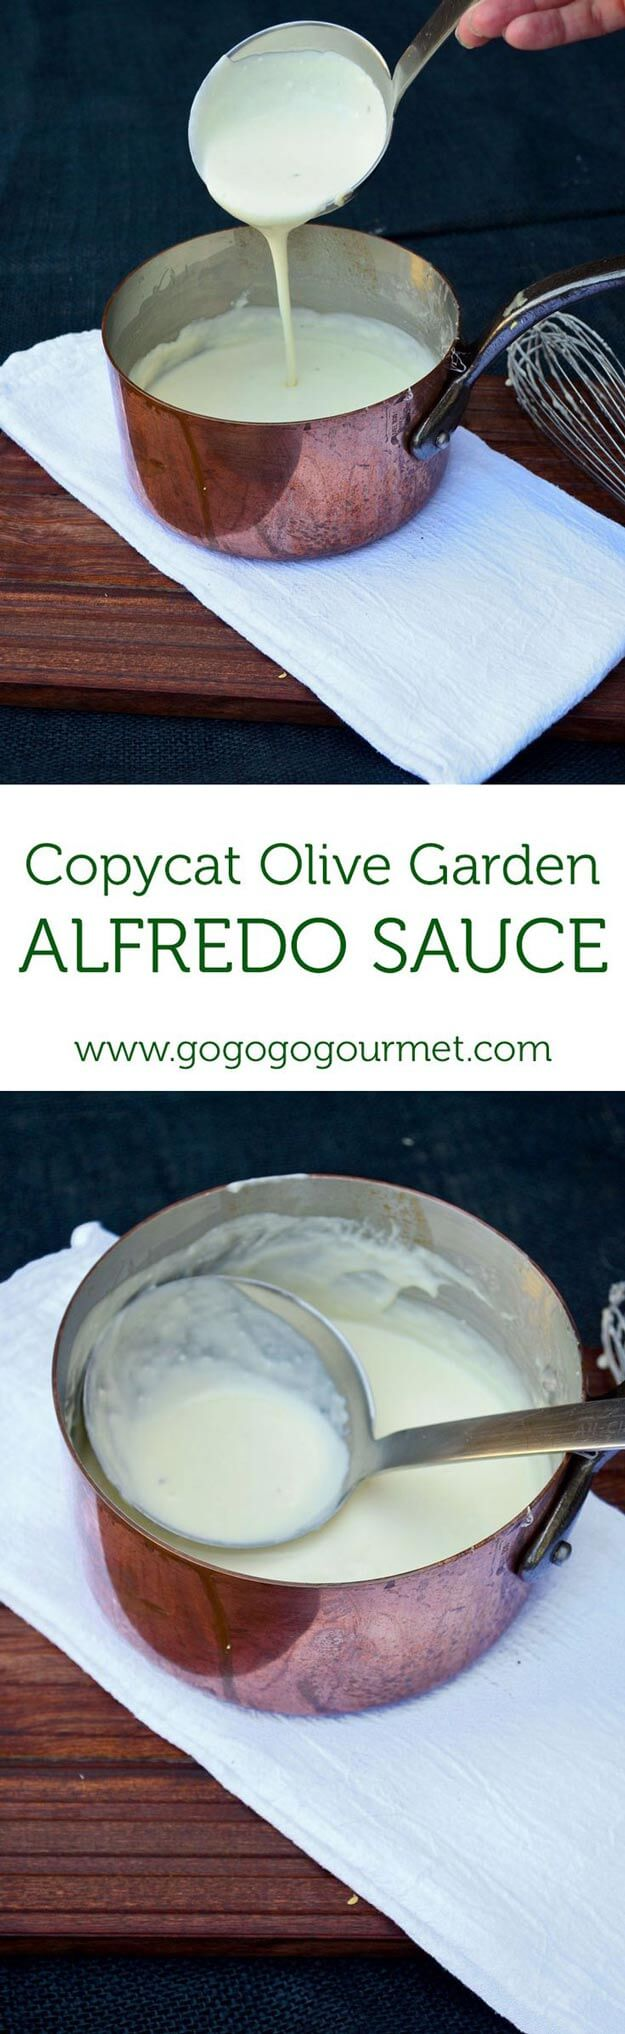 59 best copycat recipes from restaurants to make at home - Olive garden alfredo recipe copycat ...